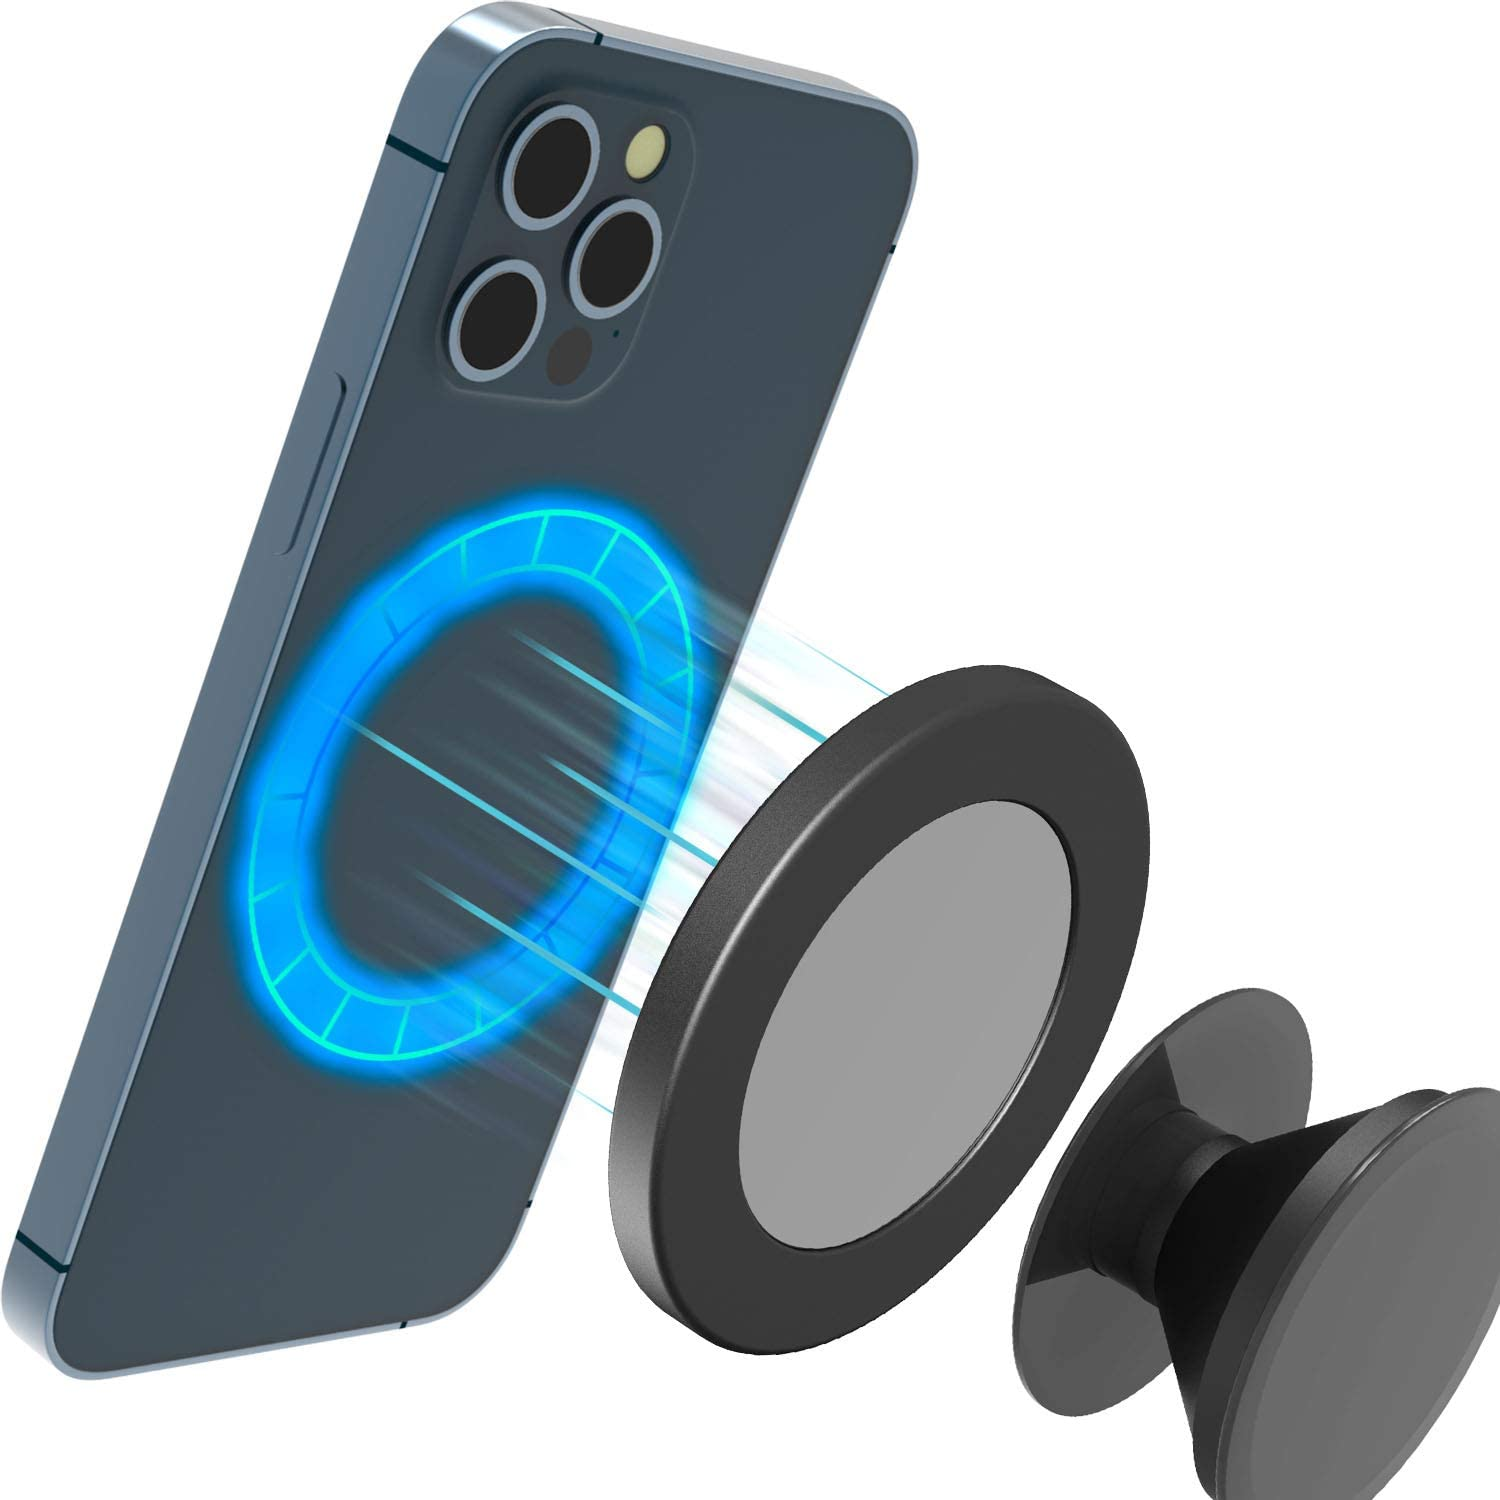 Quarble Magnetic Pop Base Compatible with MagSafe Case and iPhone 13 12 Pro Max Mini Accessories for The Users of Phone Grip/Stand/Holder and More